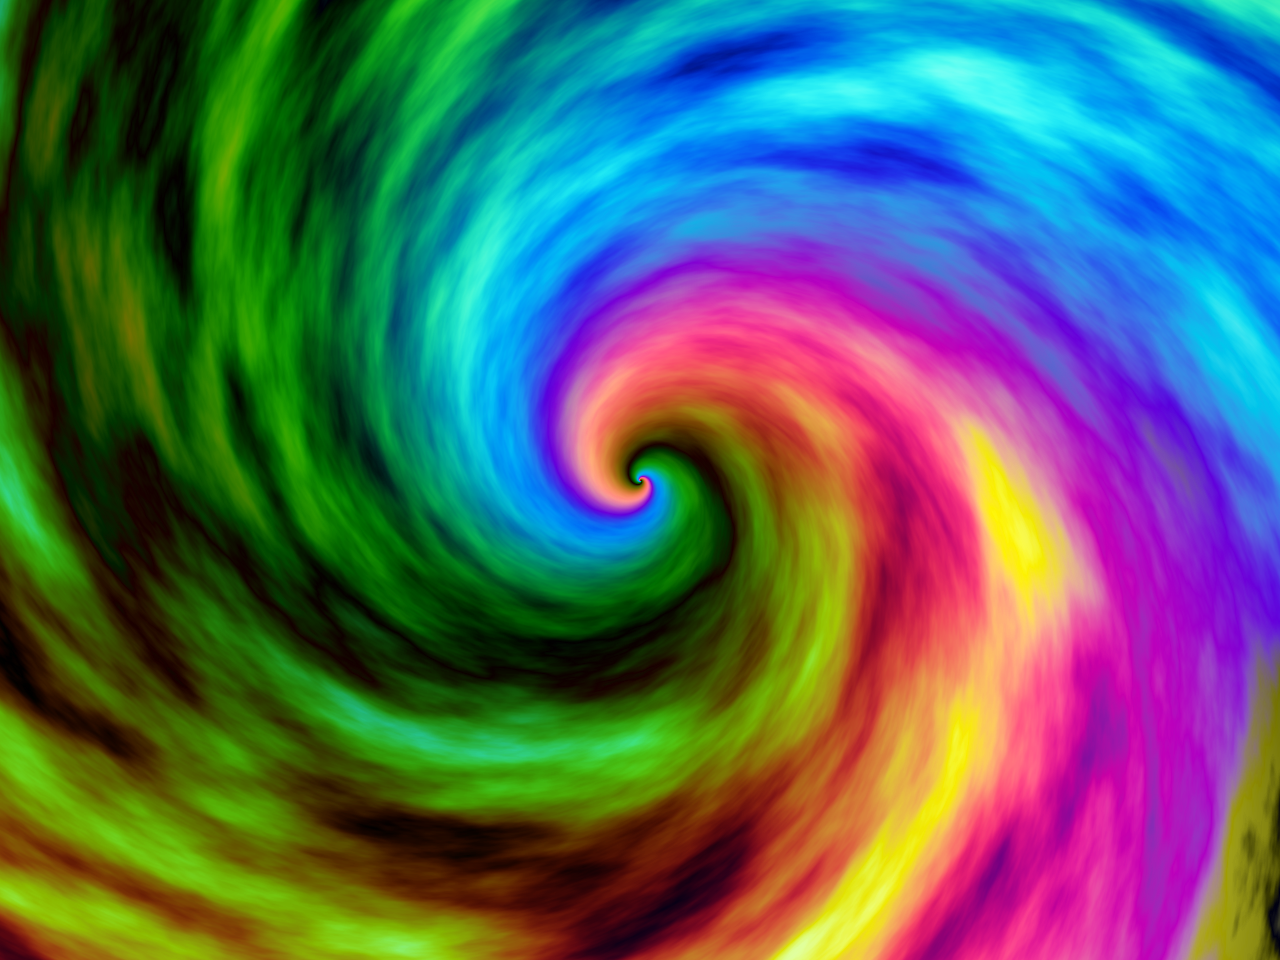 Waves Of Color By Luisbc On DeviantArt